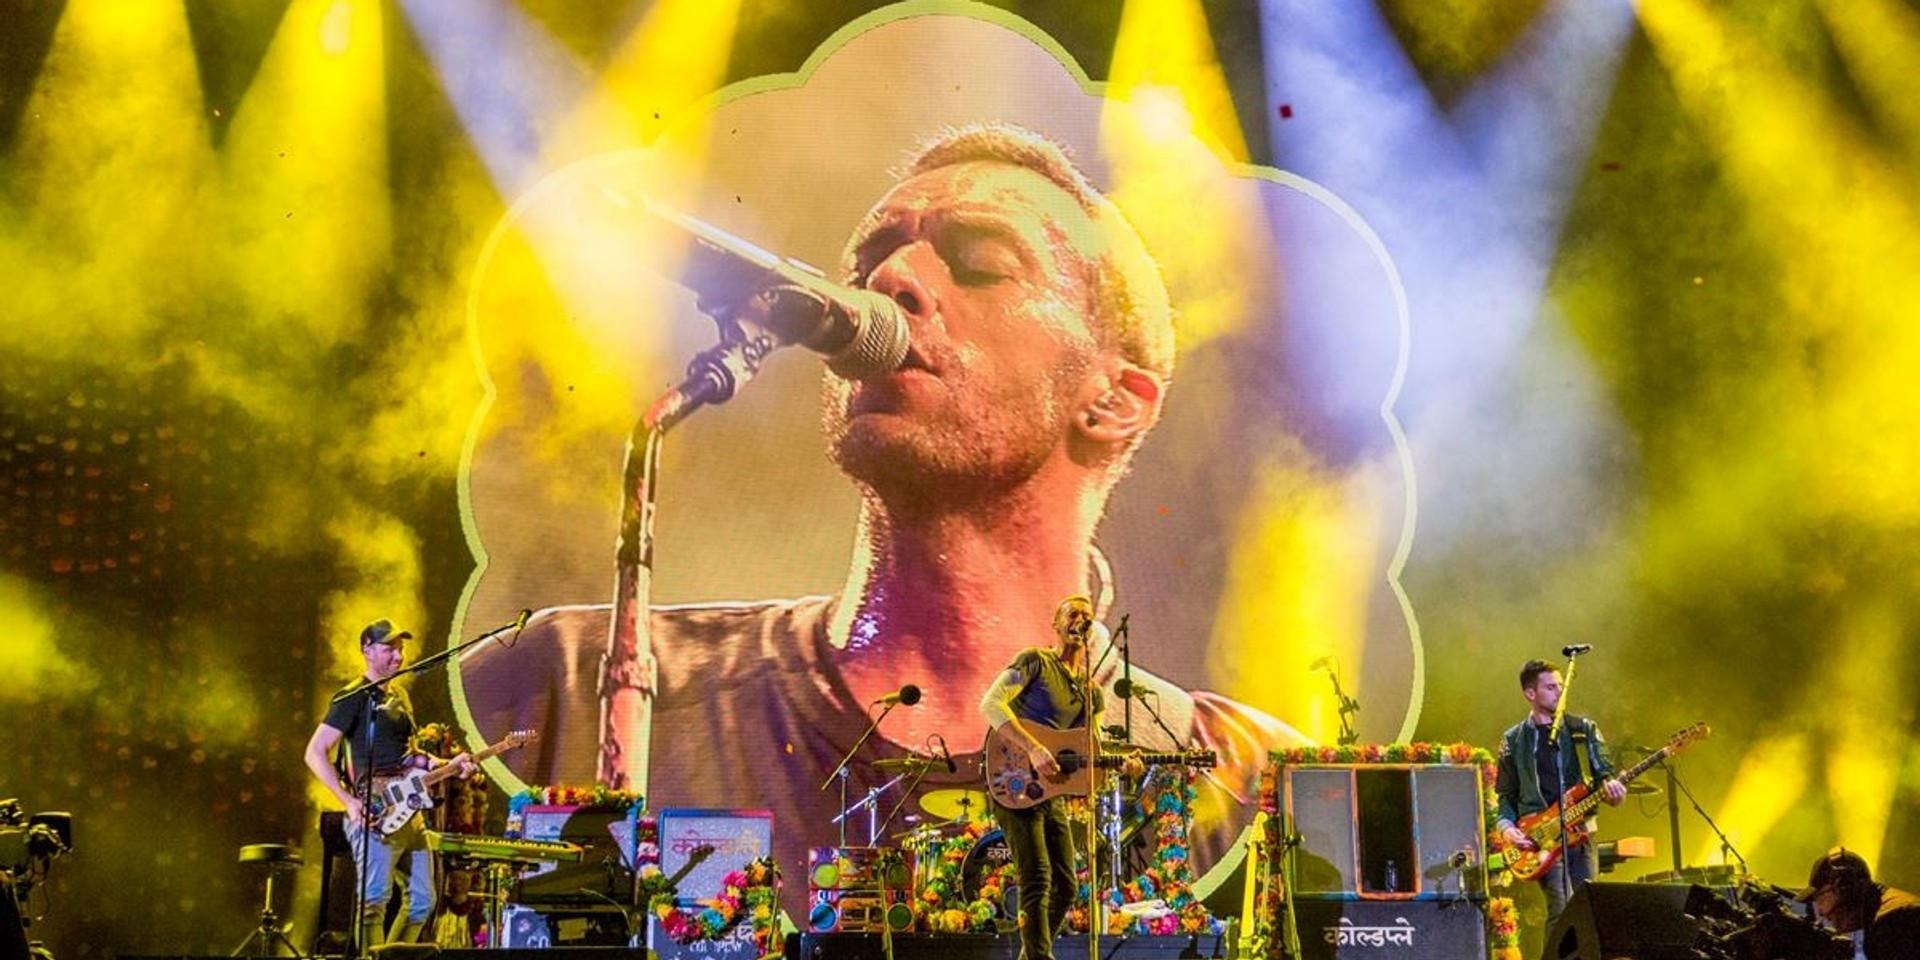 Adventure of a lifetime: Celebrating New Year's Eve with Coldplay